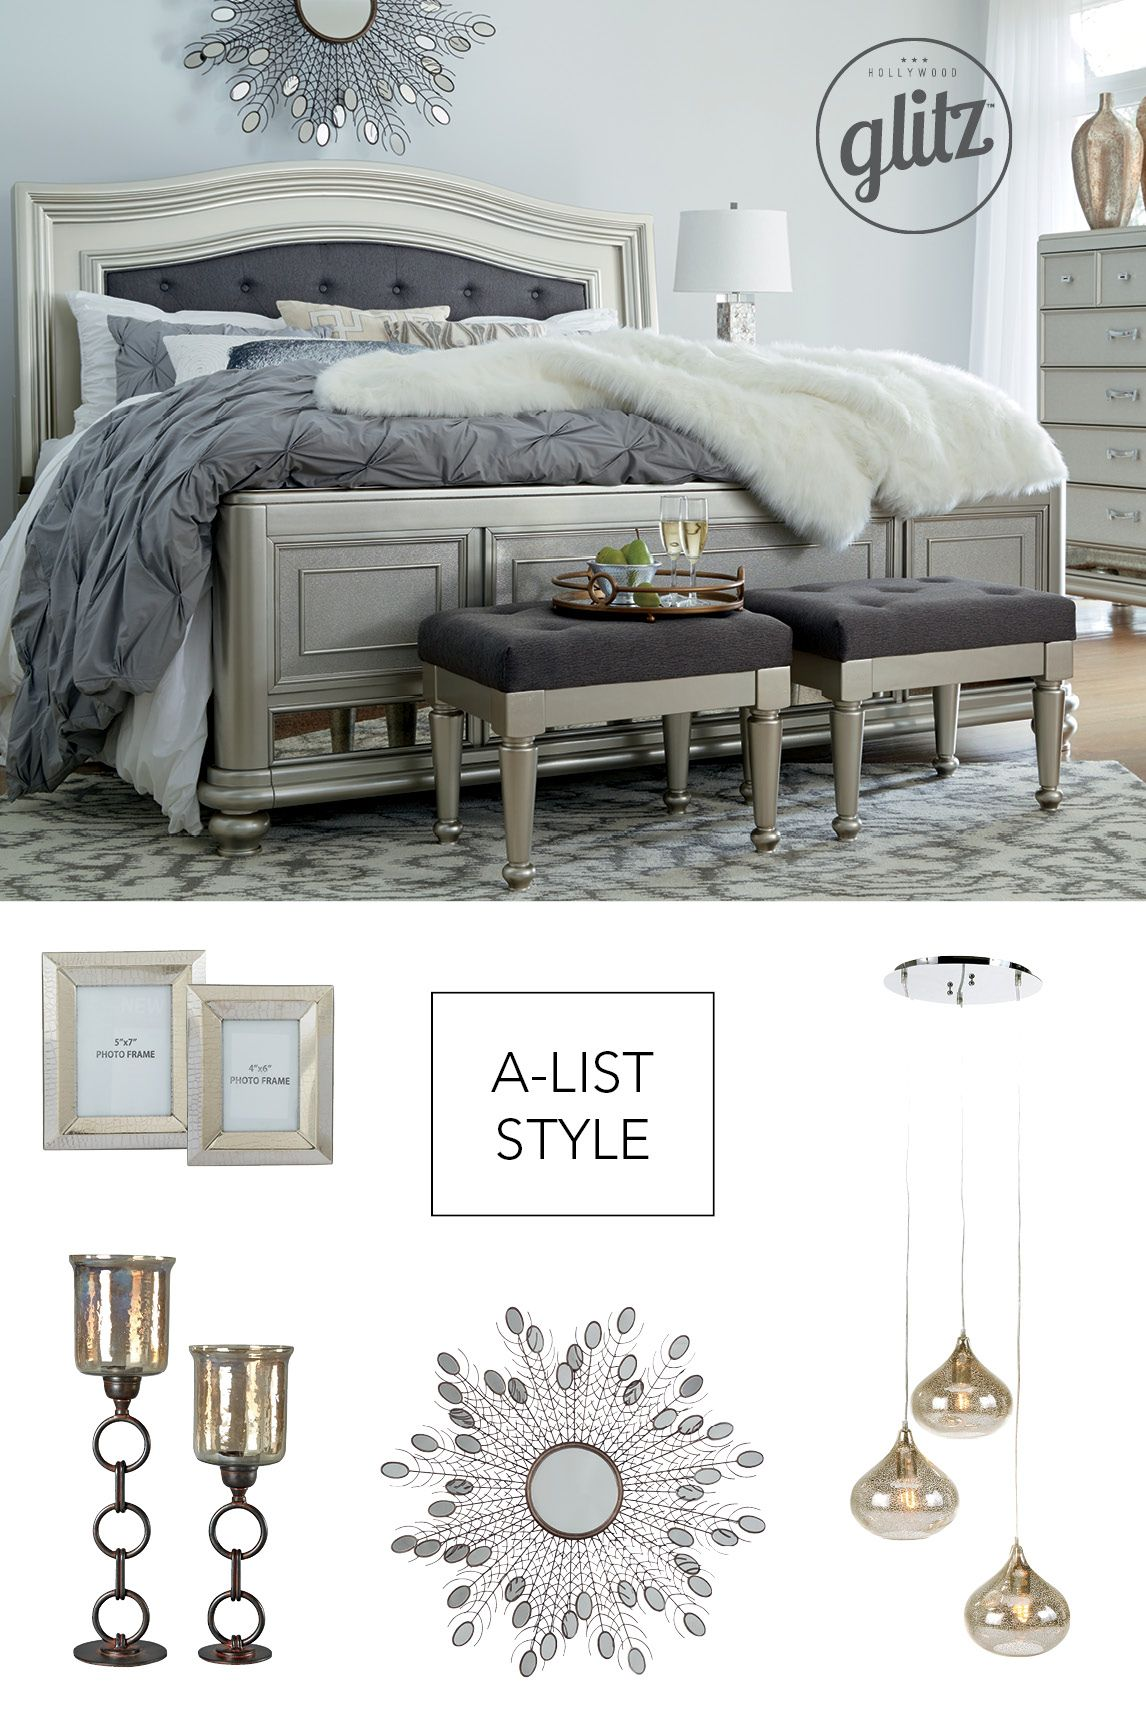 Adding glitz and glam to your bedroom has never been